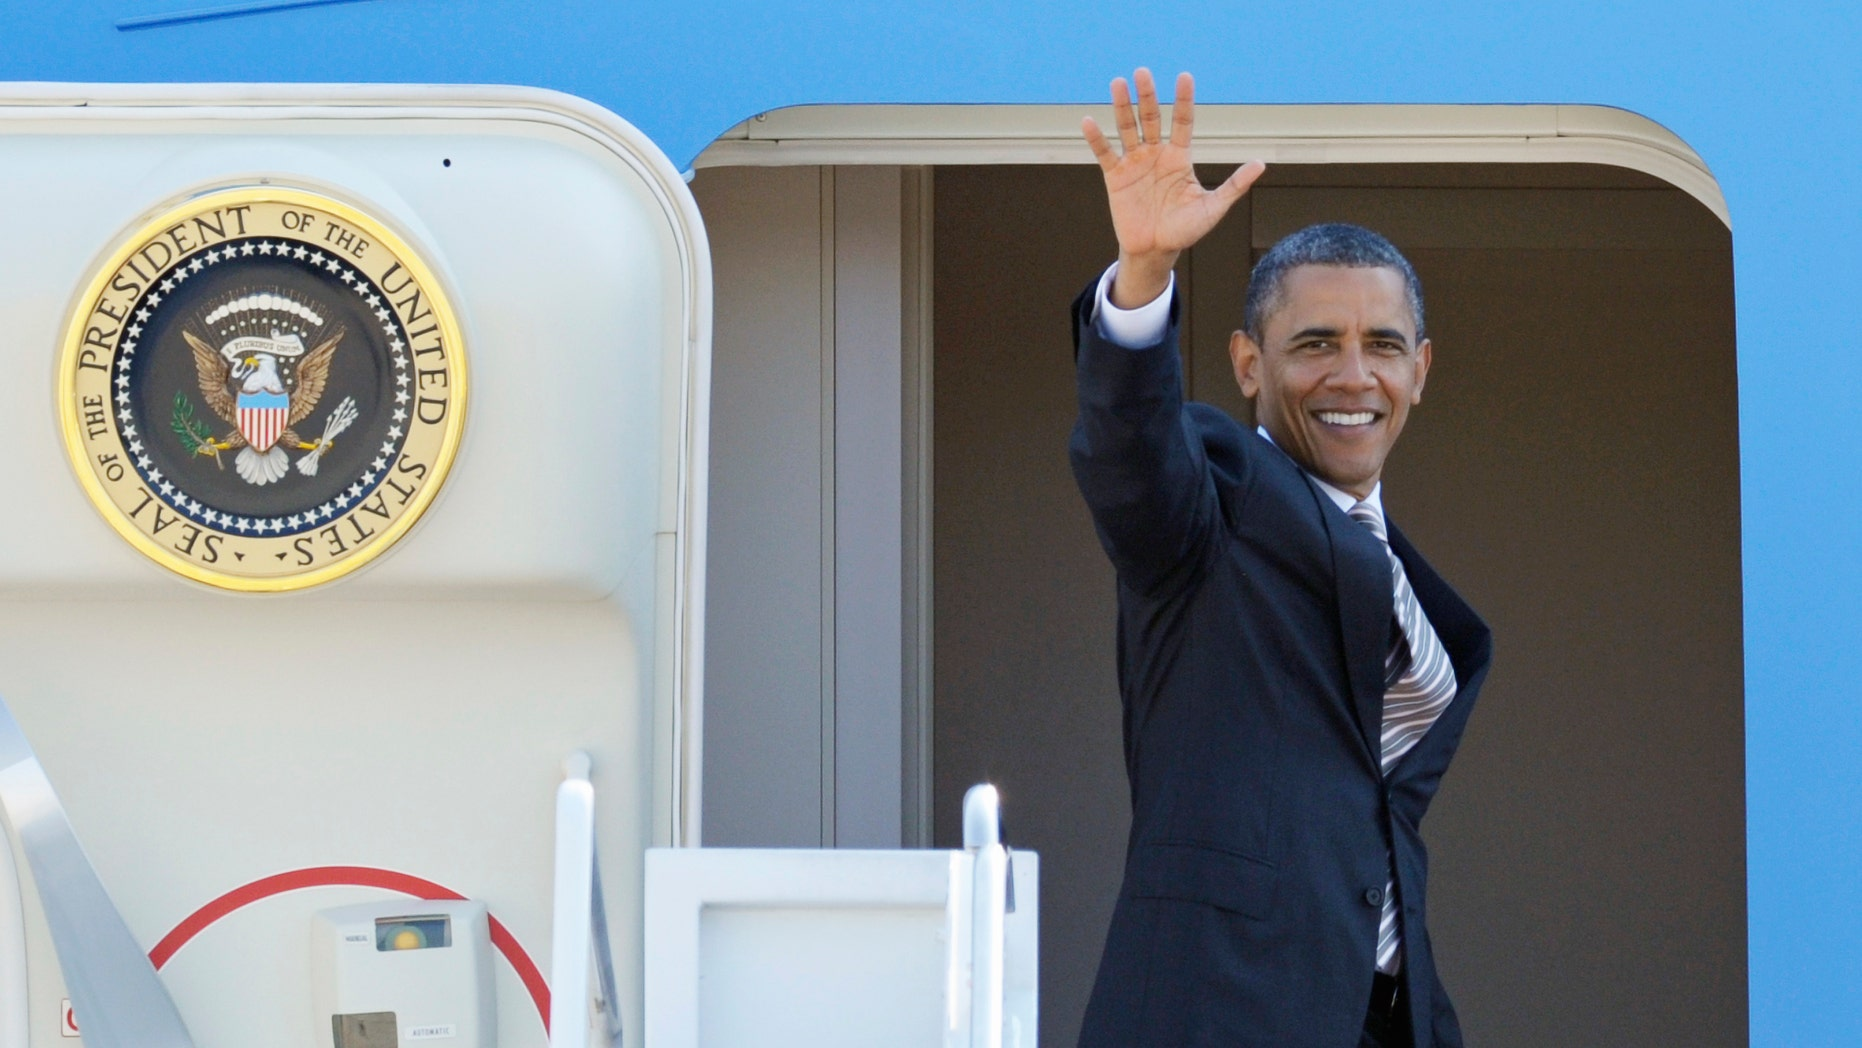 President Obama waves as he boards Air Force One at Andrews Air Force Base, Md., Wednesday, Sept. 14, 2011.